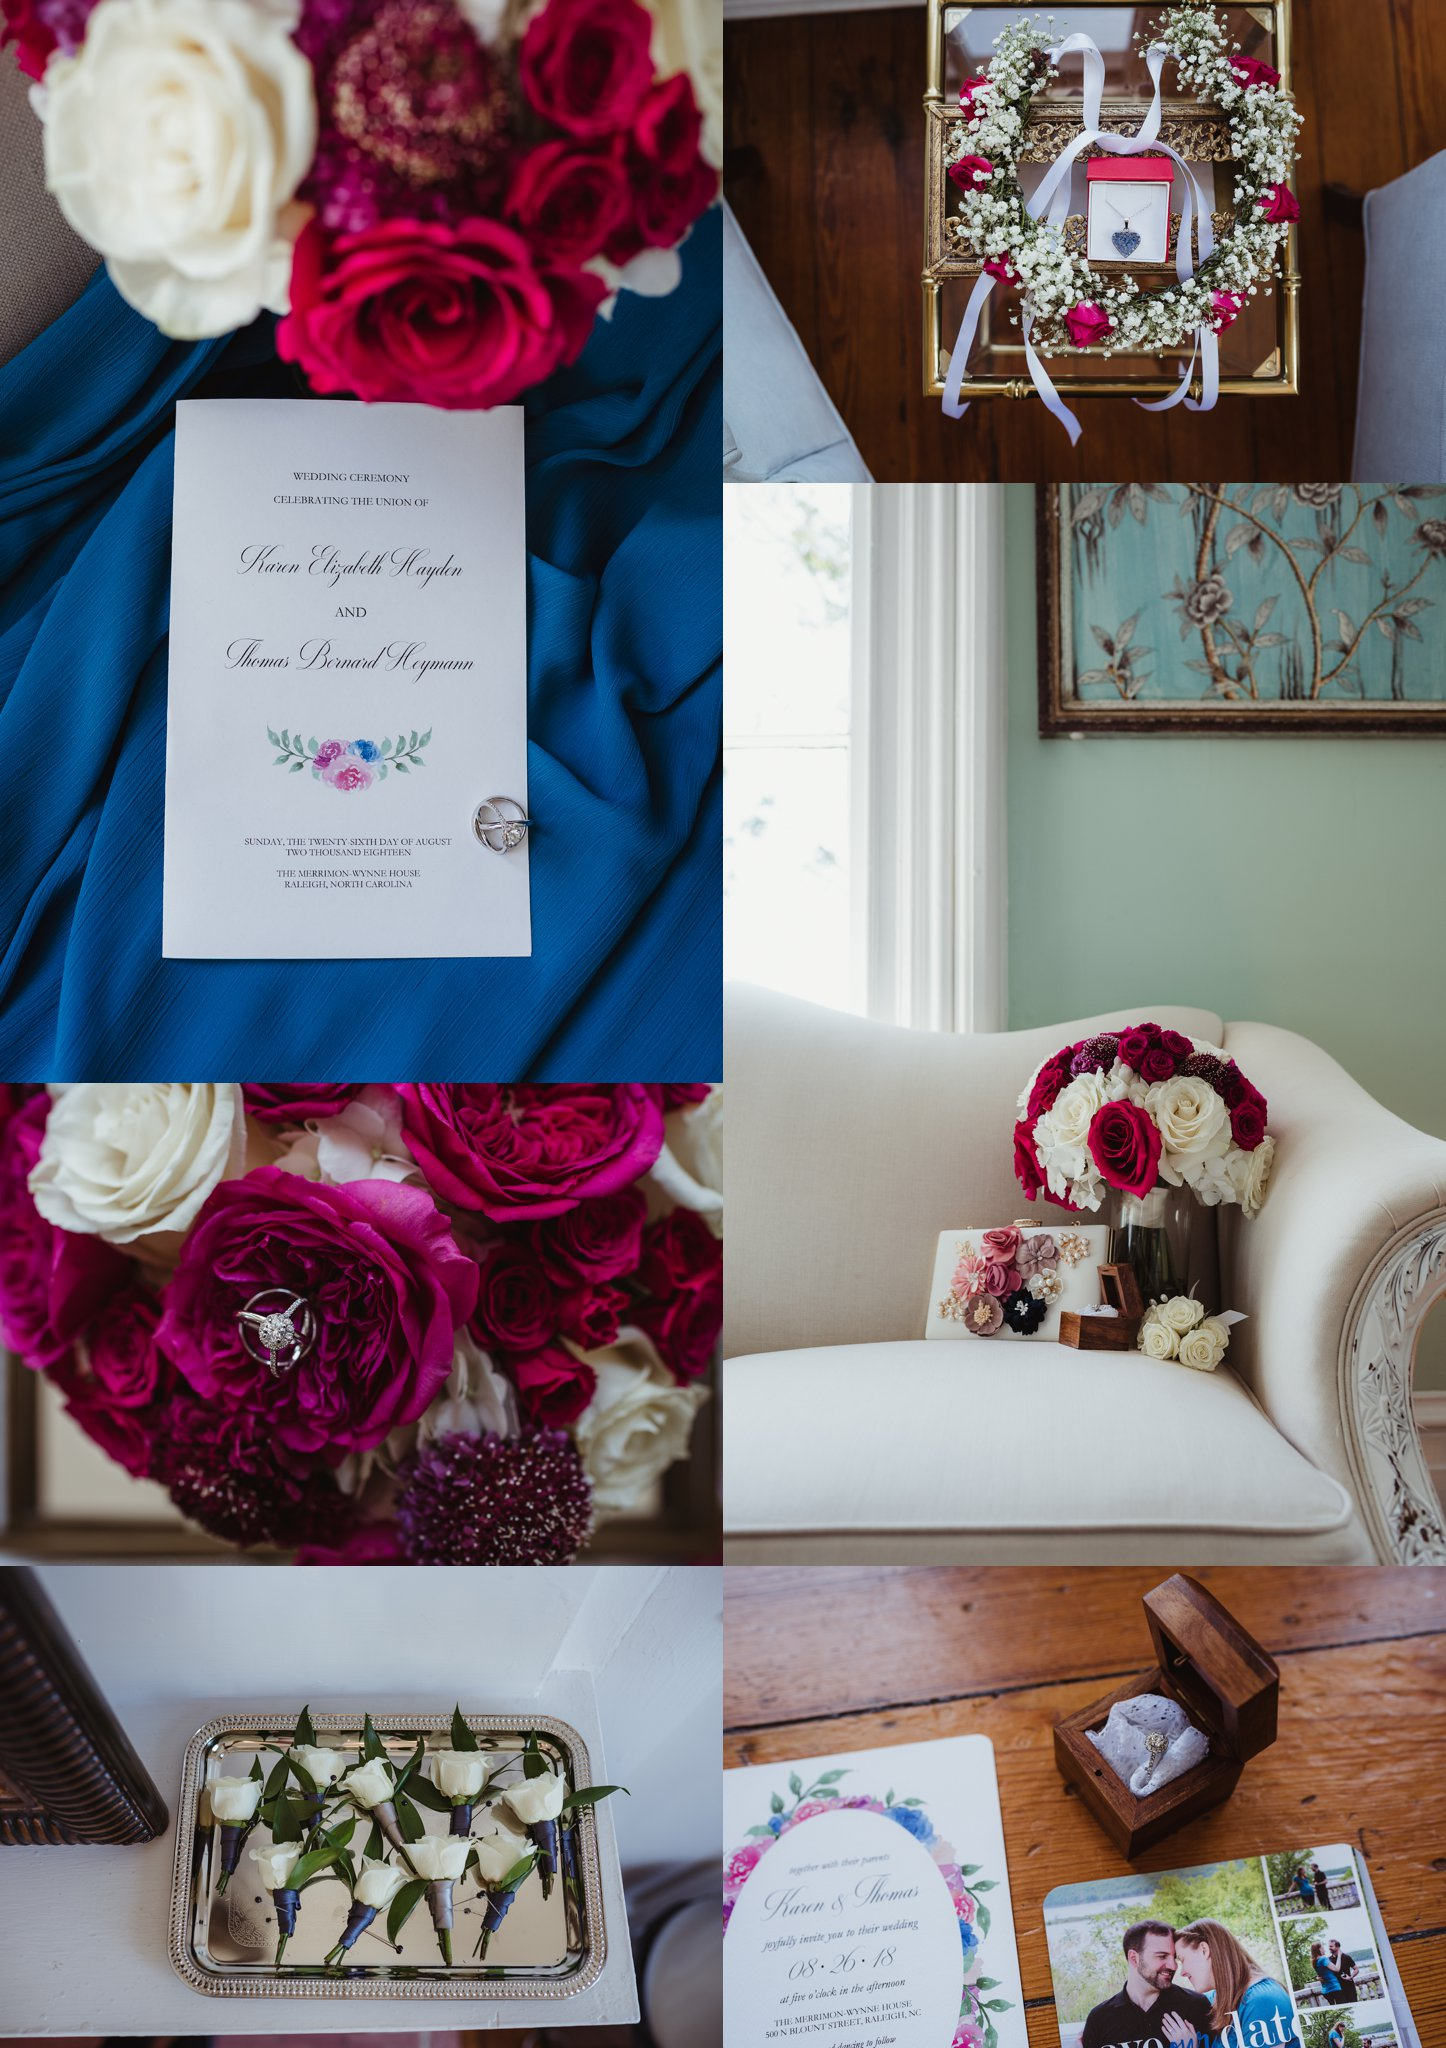 Wedding details at the Merrimon Wynne in Raleigh include pink and white roses, blue bridesmaids dresses, and watercolor invitations, photos by Rose Trail Images.